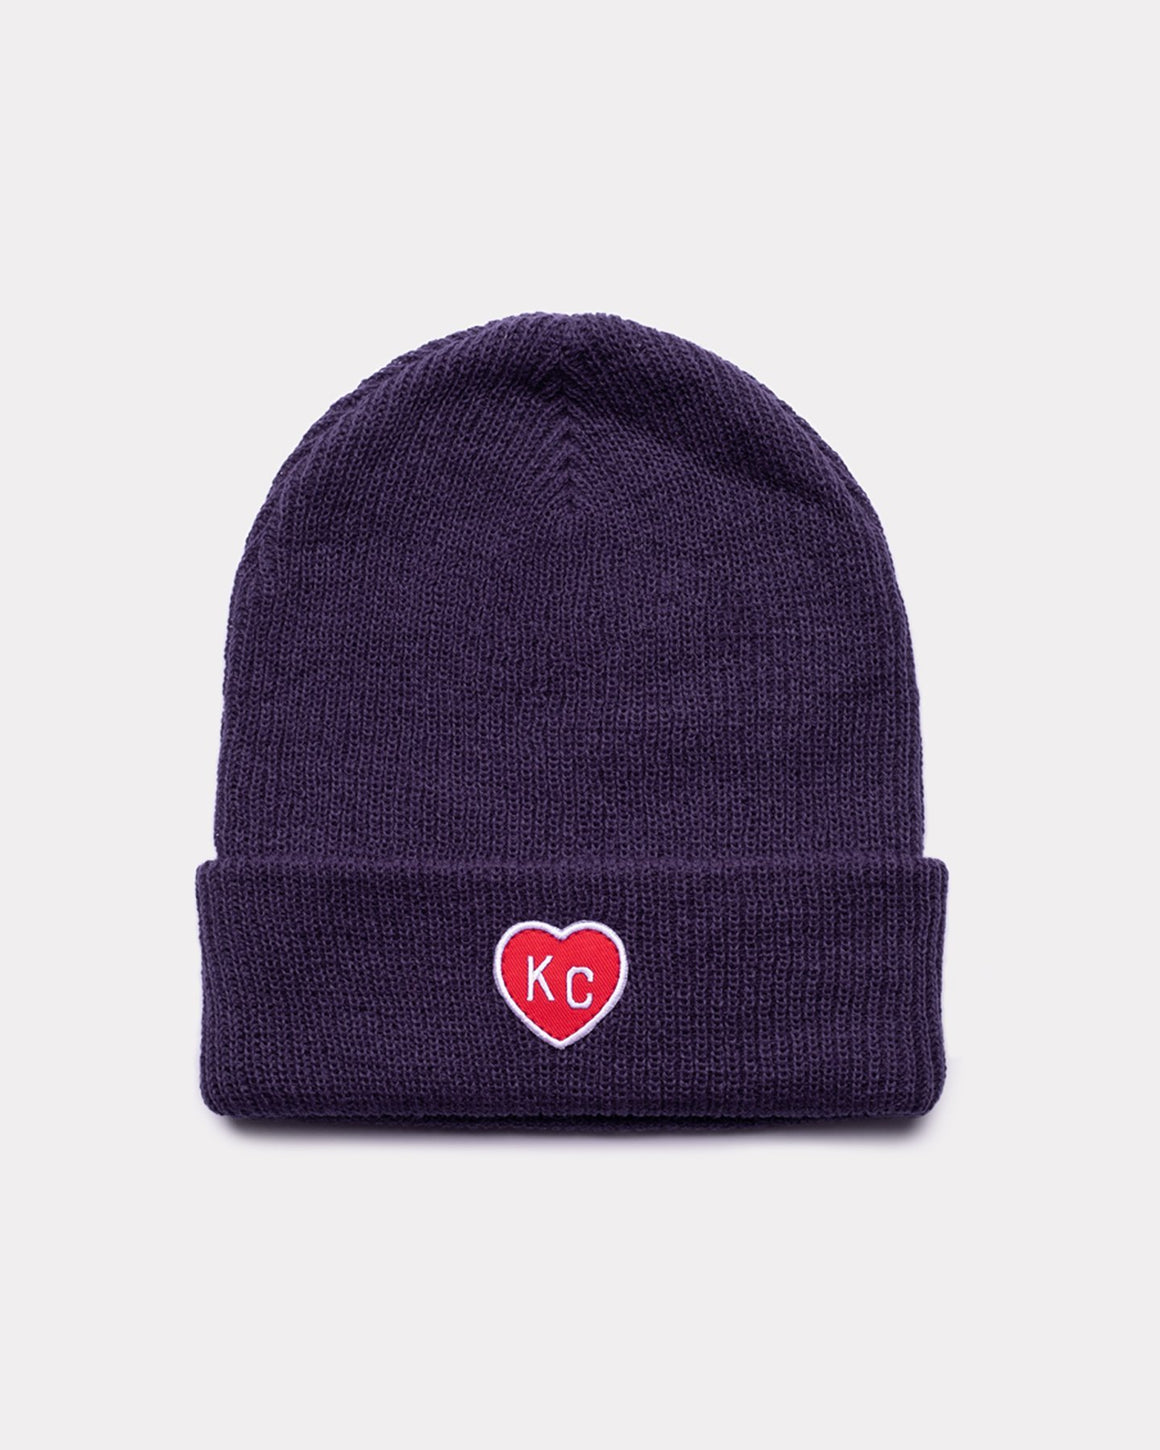 CHARLIE HUSTLE | KC HEART BEANIE - NAVY